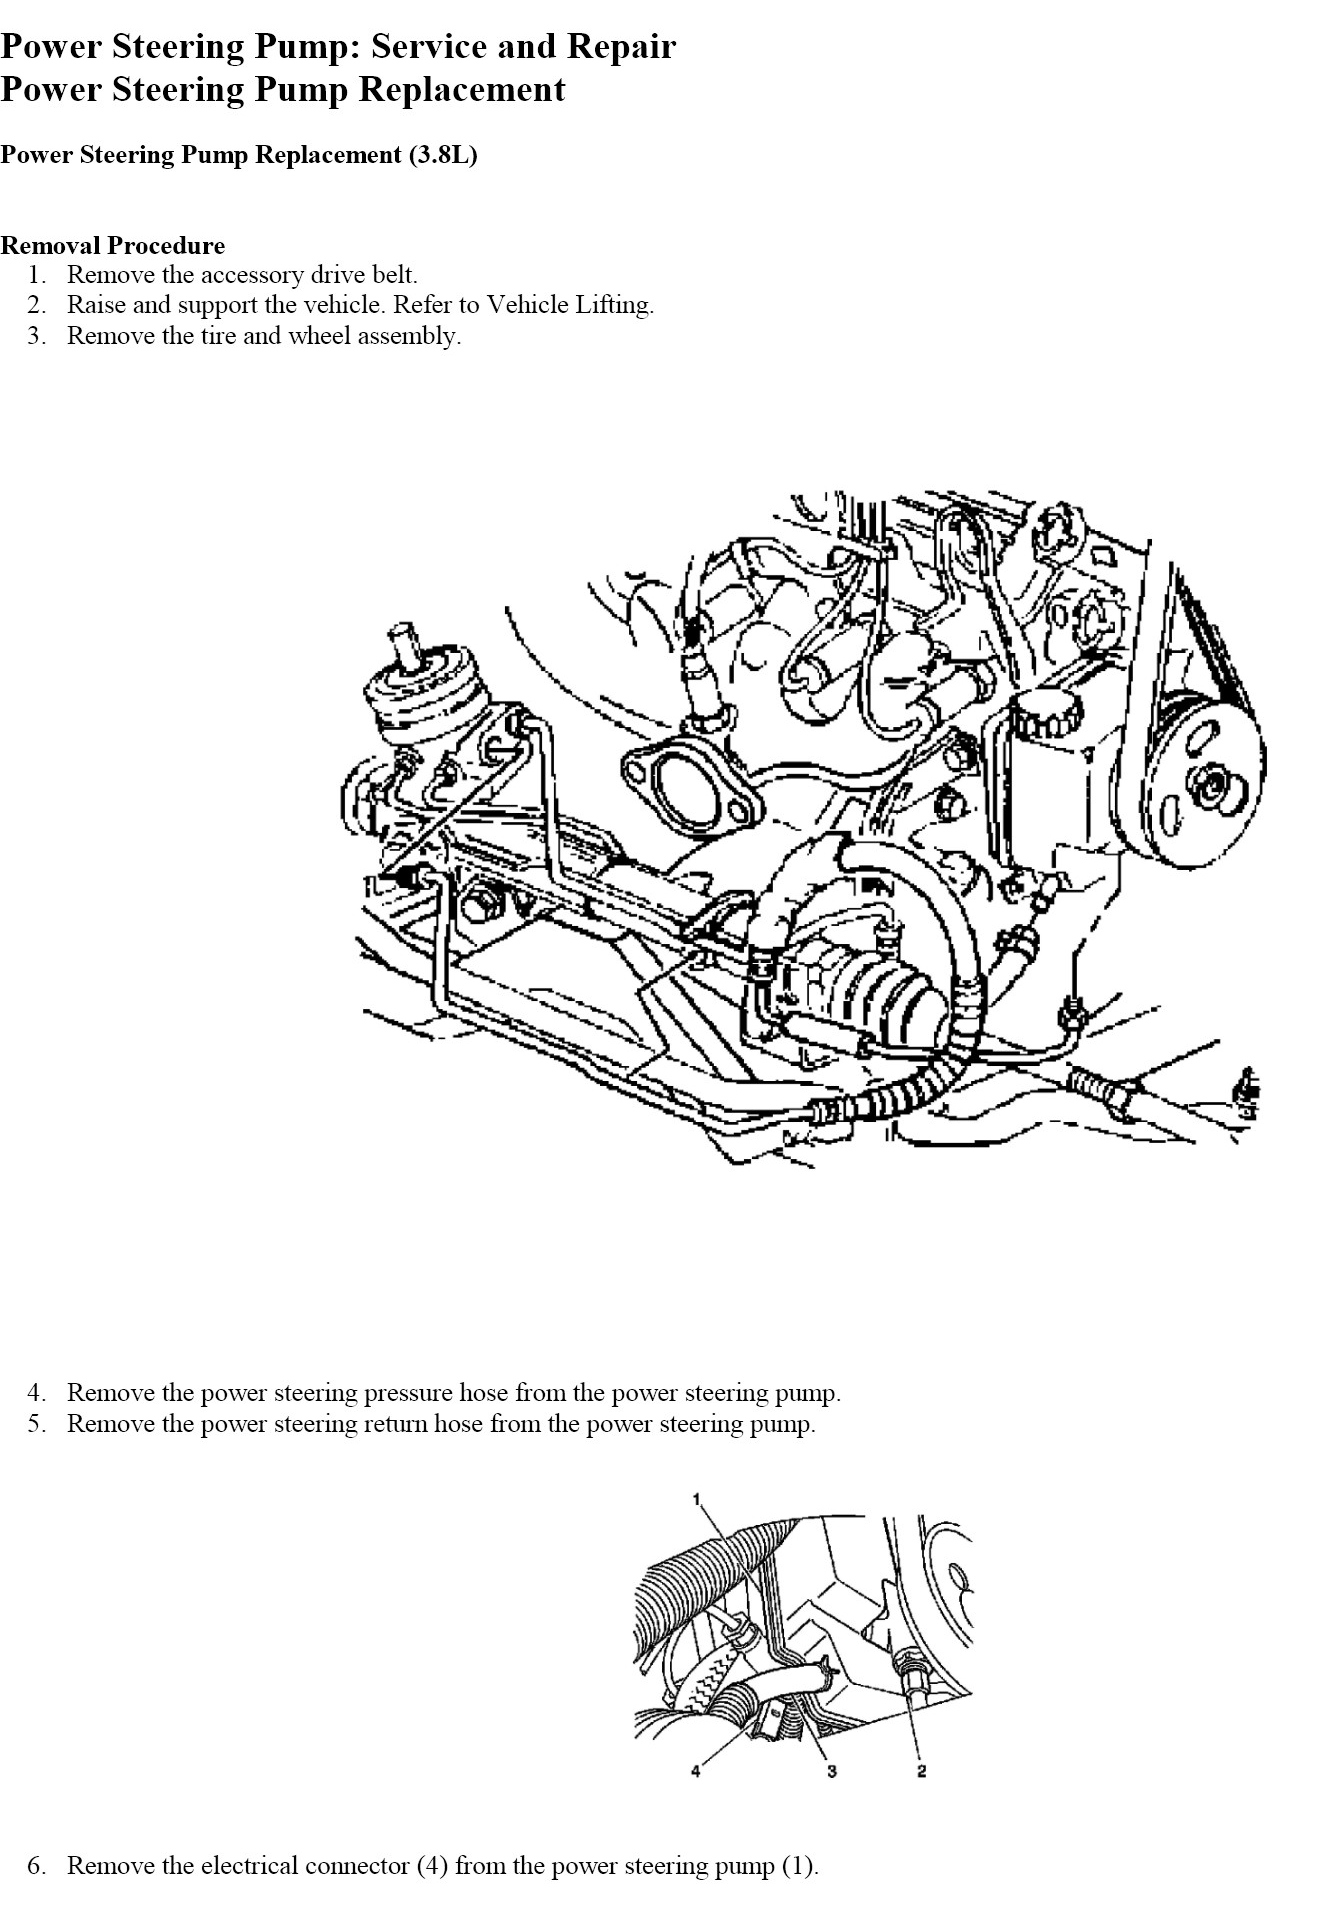 how to replace power steering pump on a buick lacrosse cx graphic